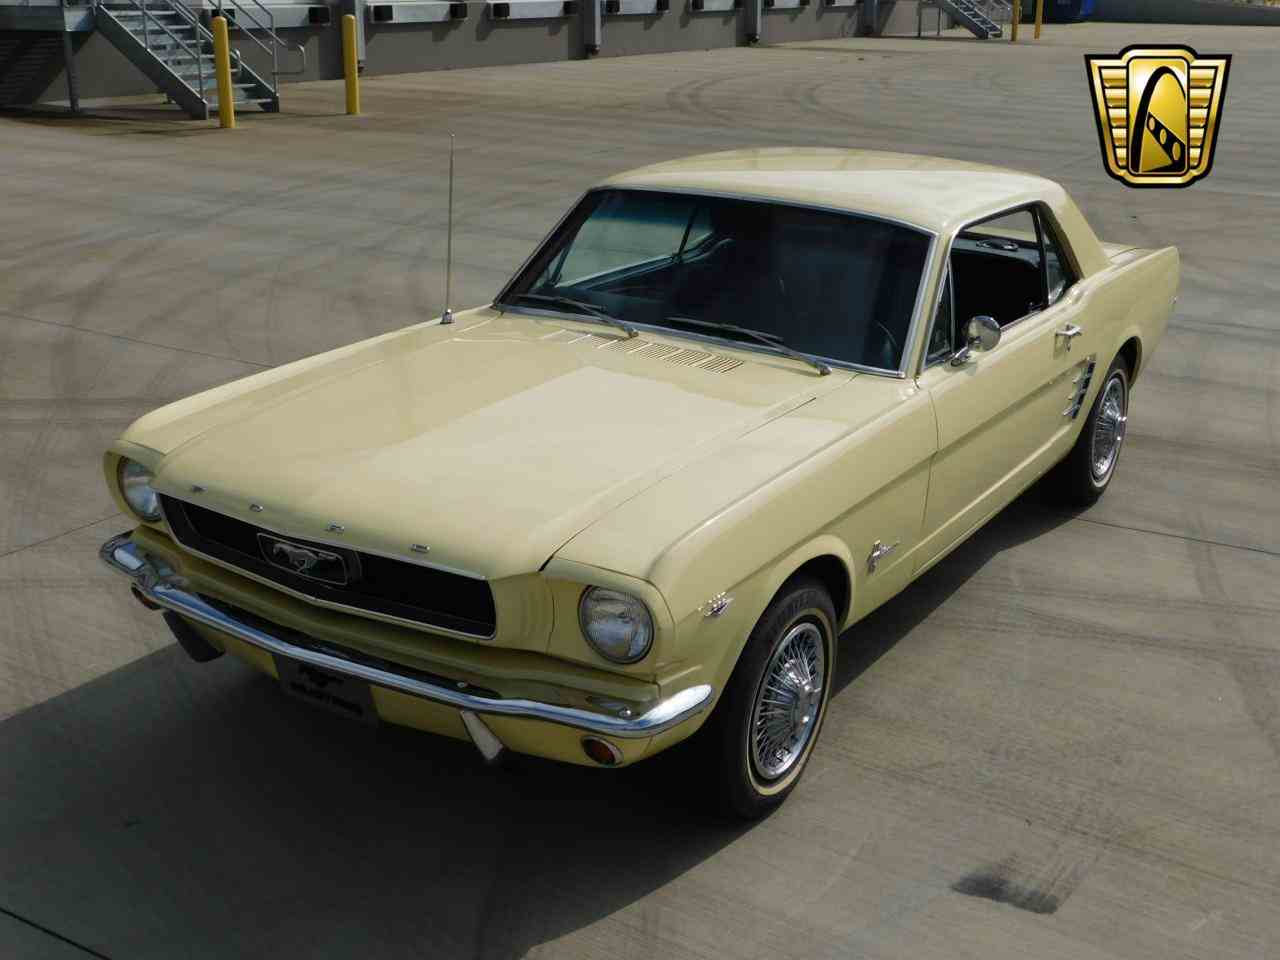 Large Picture of '66 Ford Mustang - $19,995.00 Offered by Gateway Classic Cars - Atlanta - MBRW